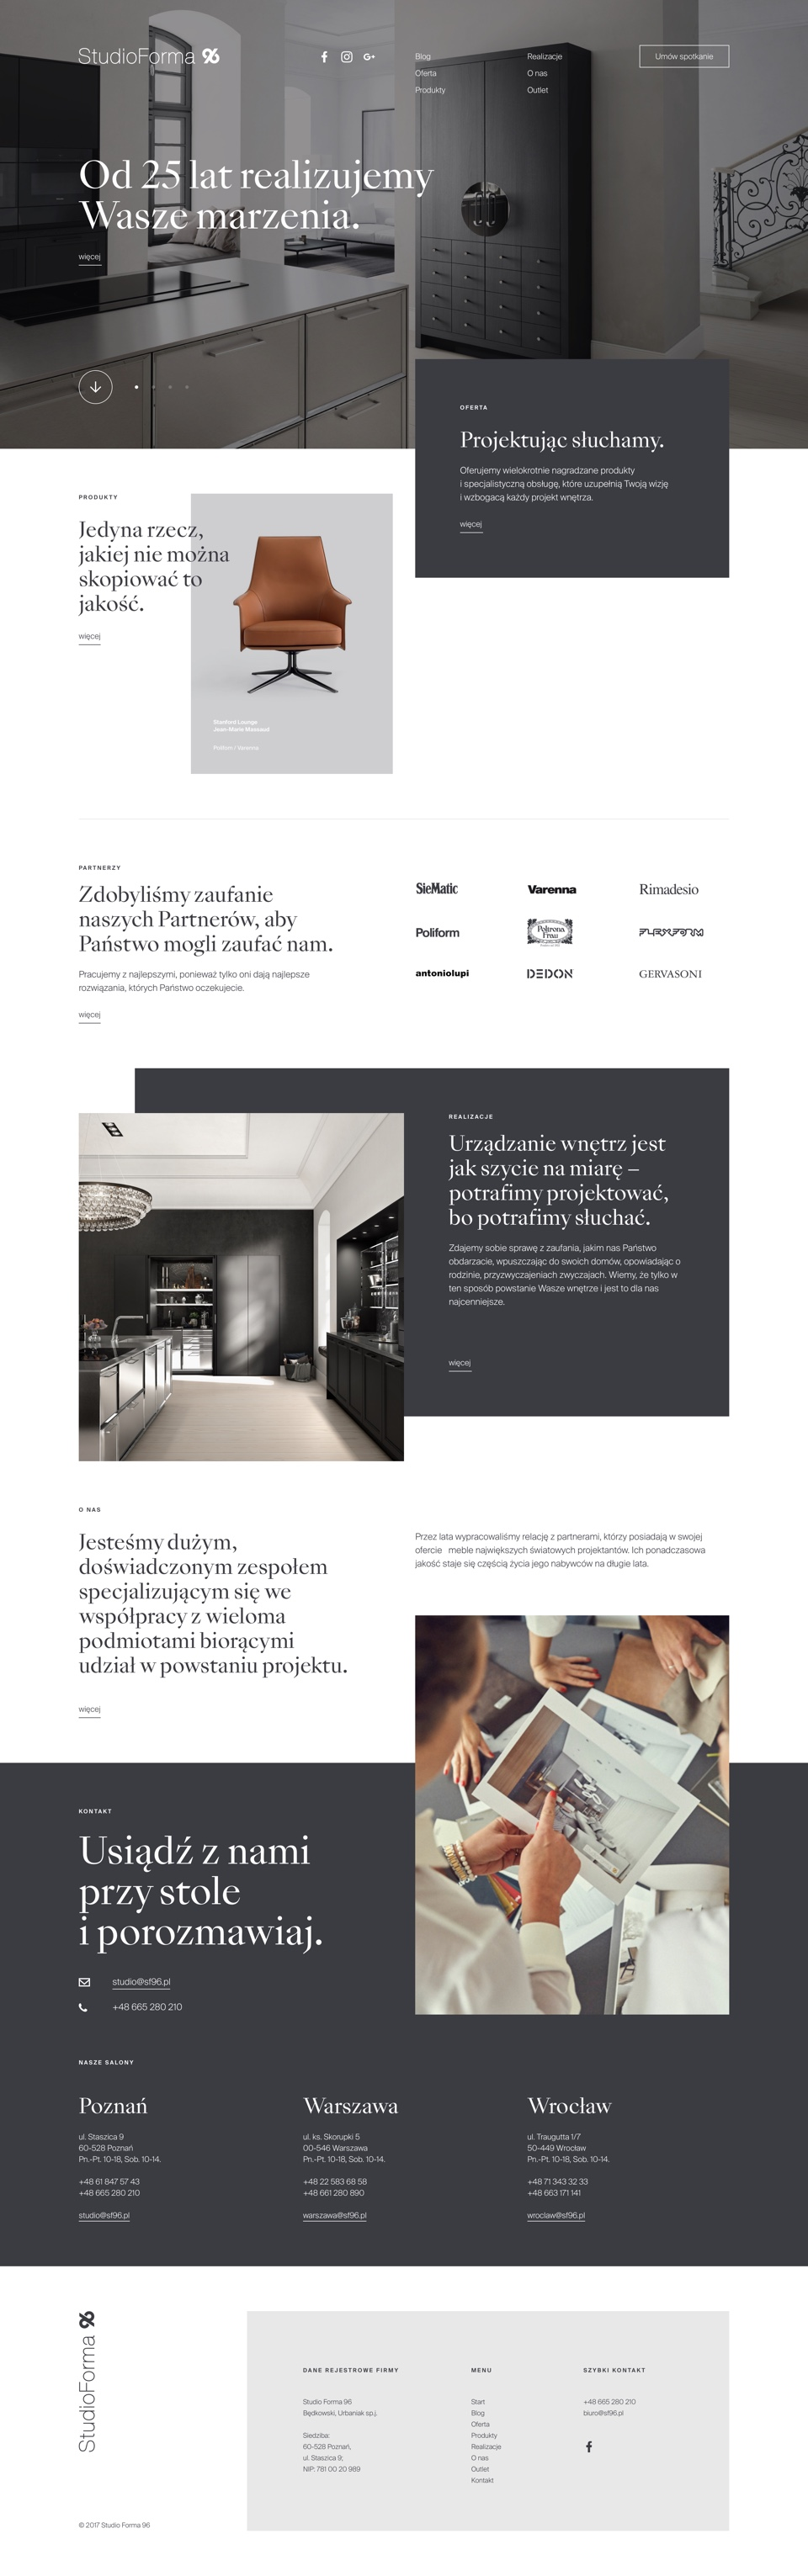 About us - webdesign -  StudioForma 96 by Uniforma